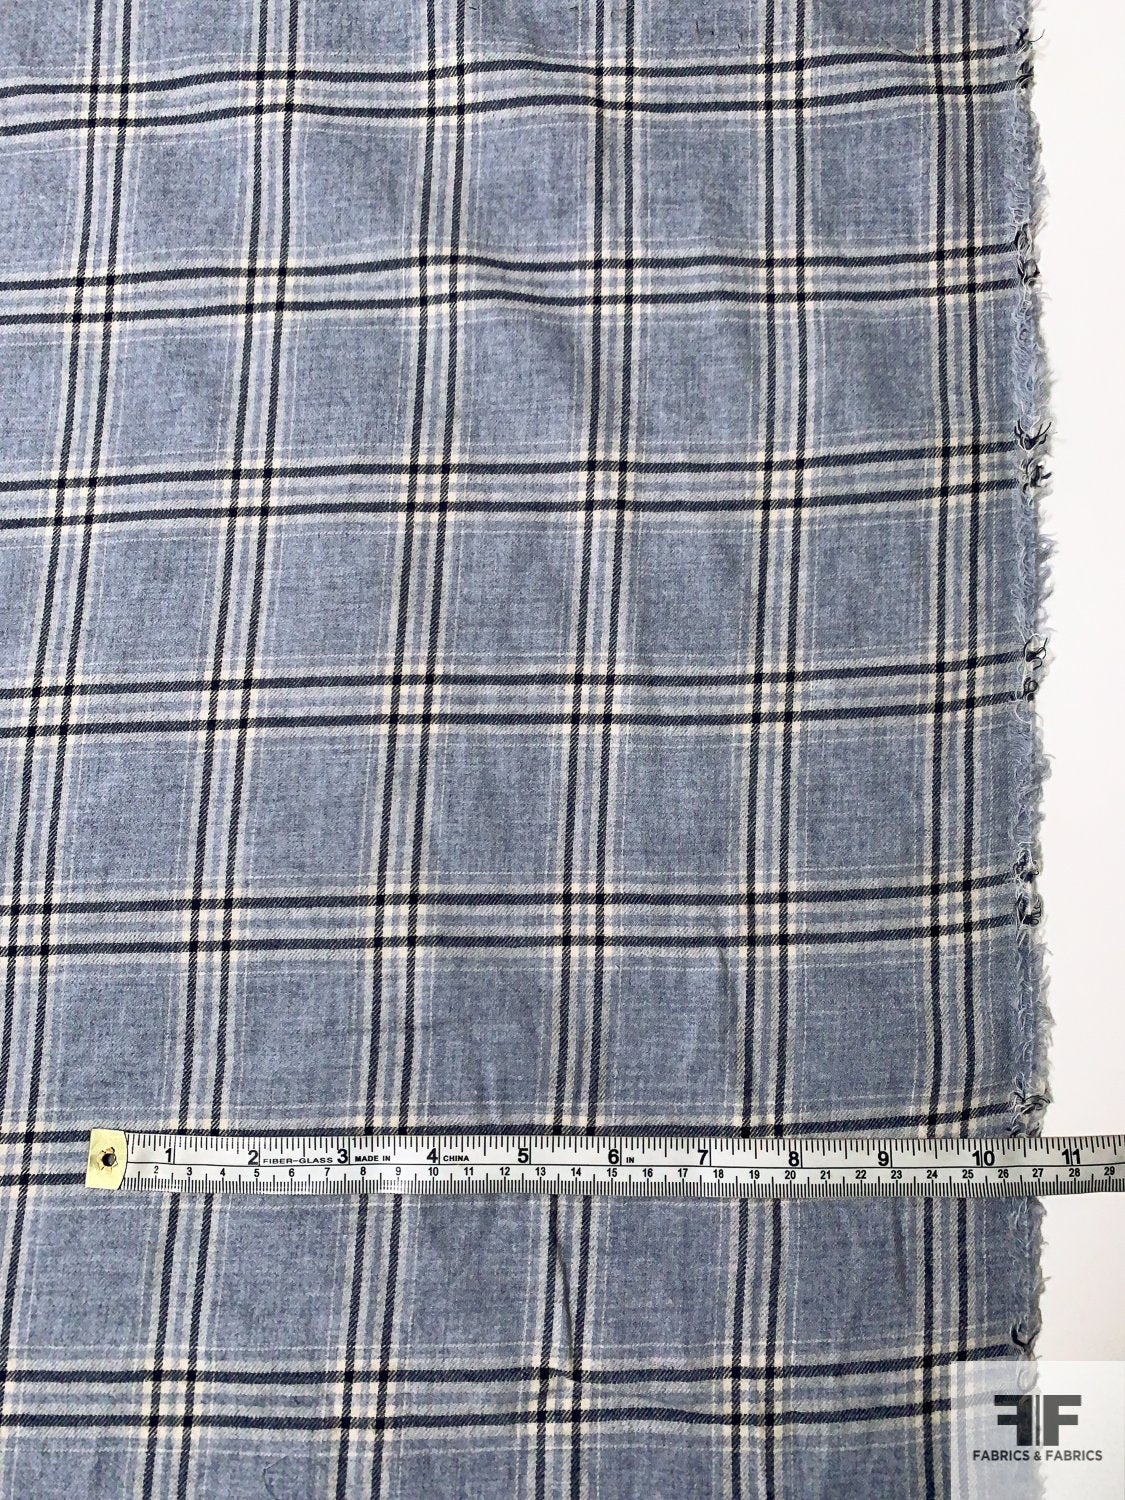 Classic Plaid Yarn-Dyed Rayon Cotton Flannel - Powder Blue / Navy / White